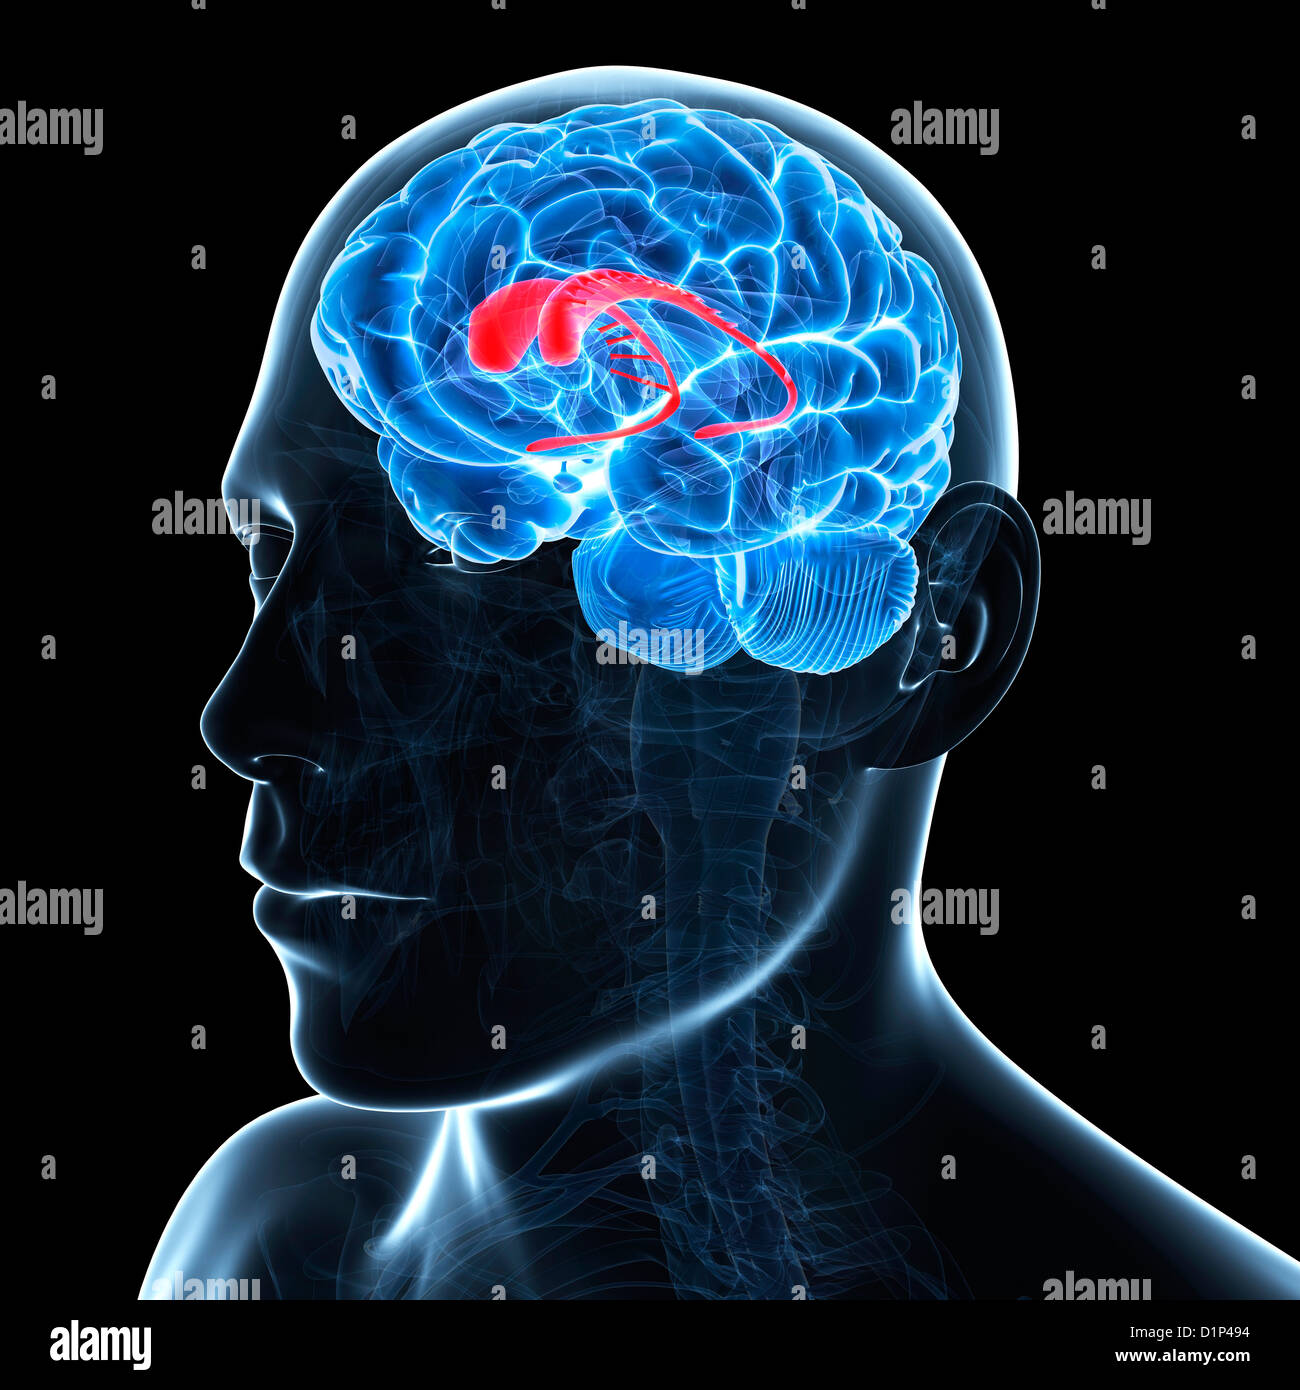 Caudate nucleus, artwork Stock Photo: 52732096 - Alamy